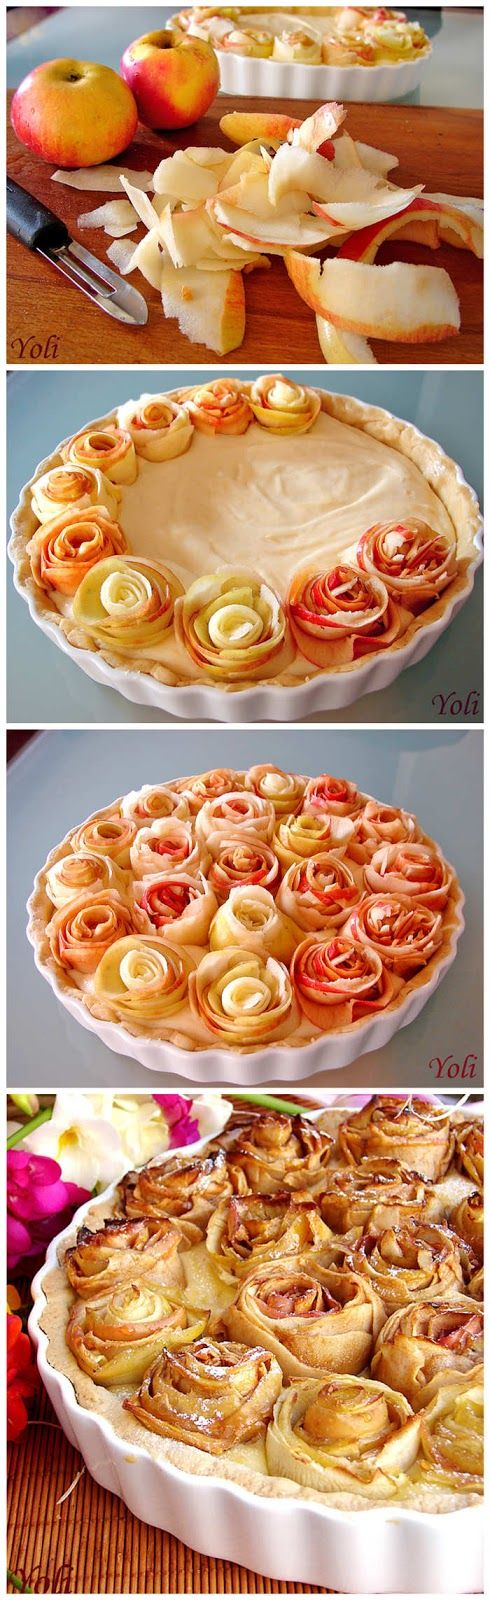 Apple pie with roses--This is beautiful!!